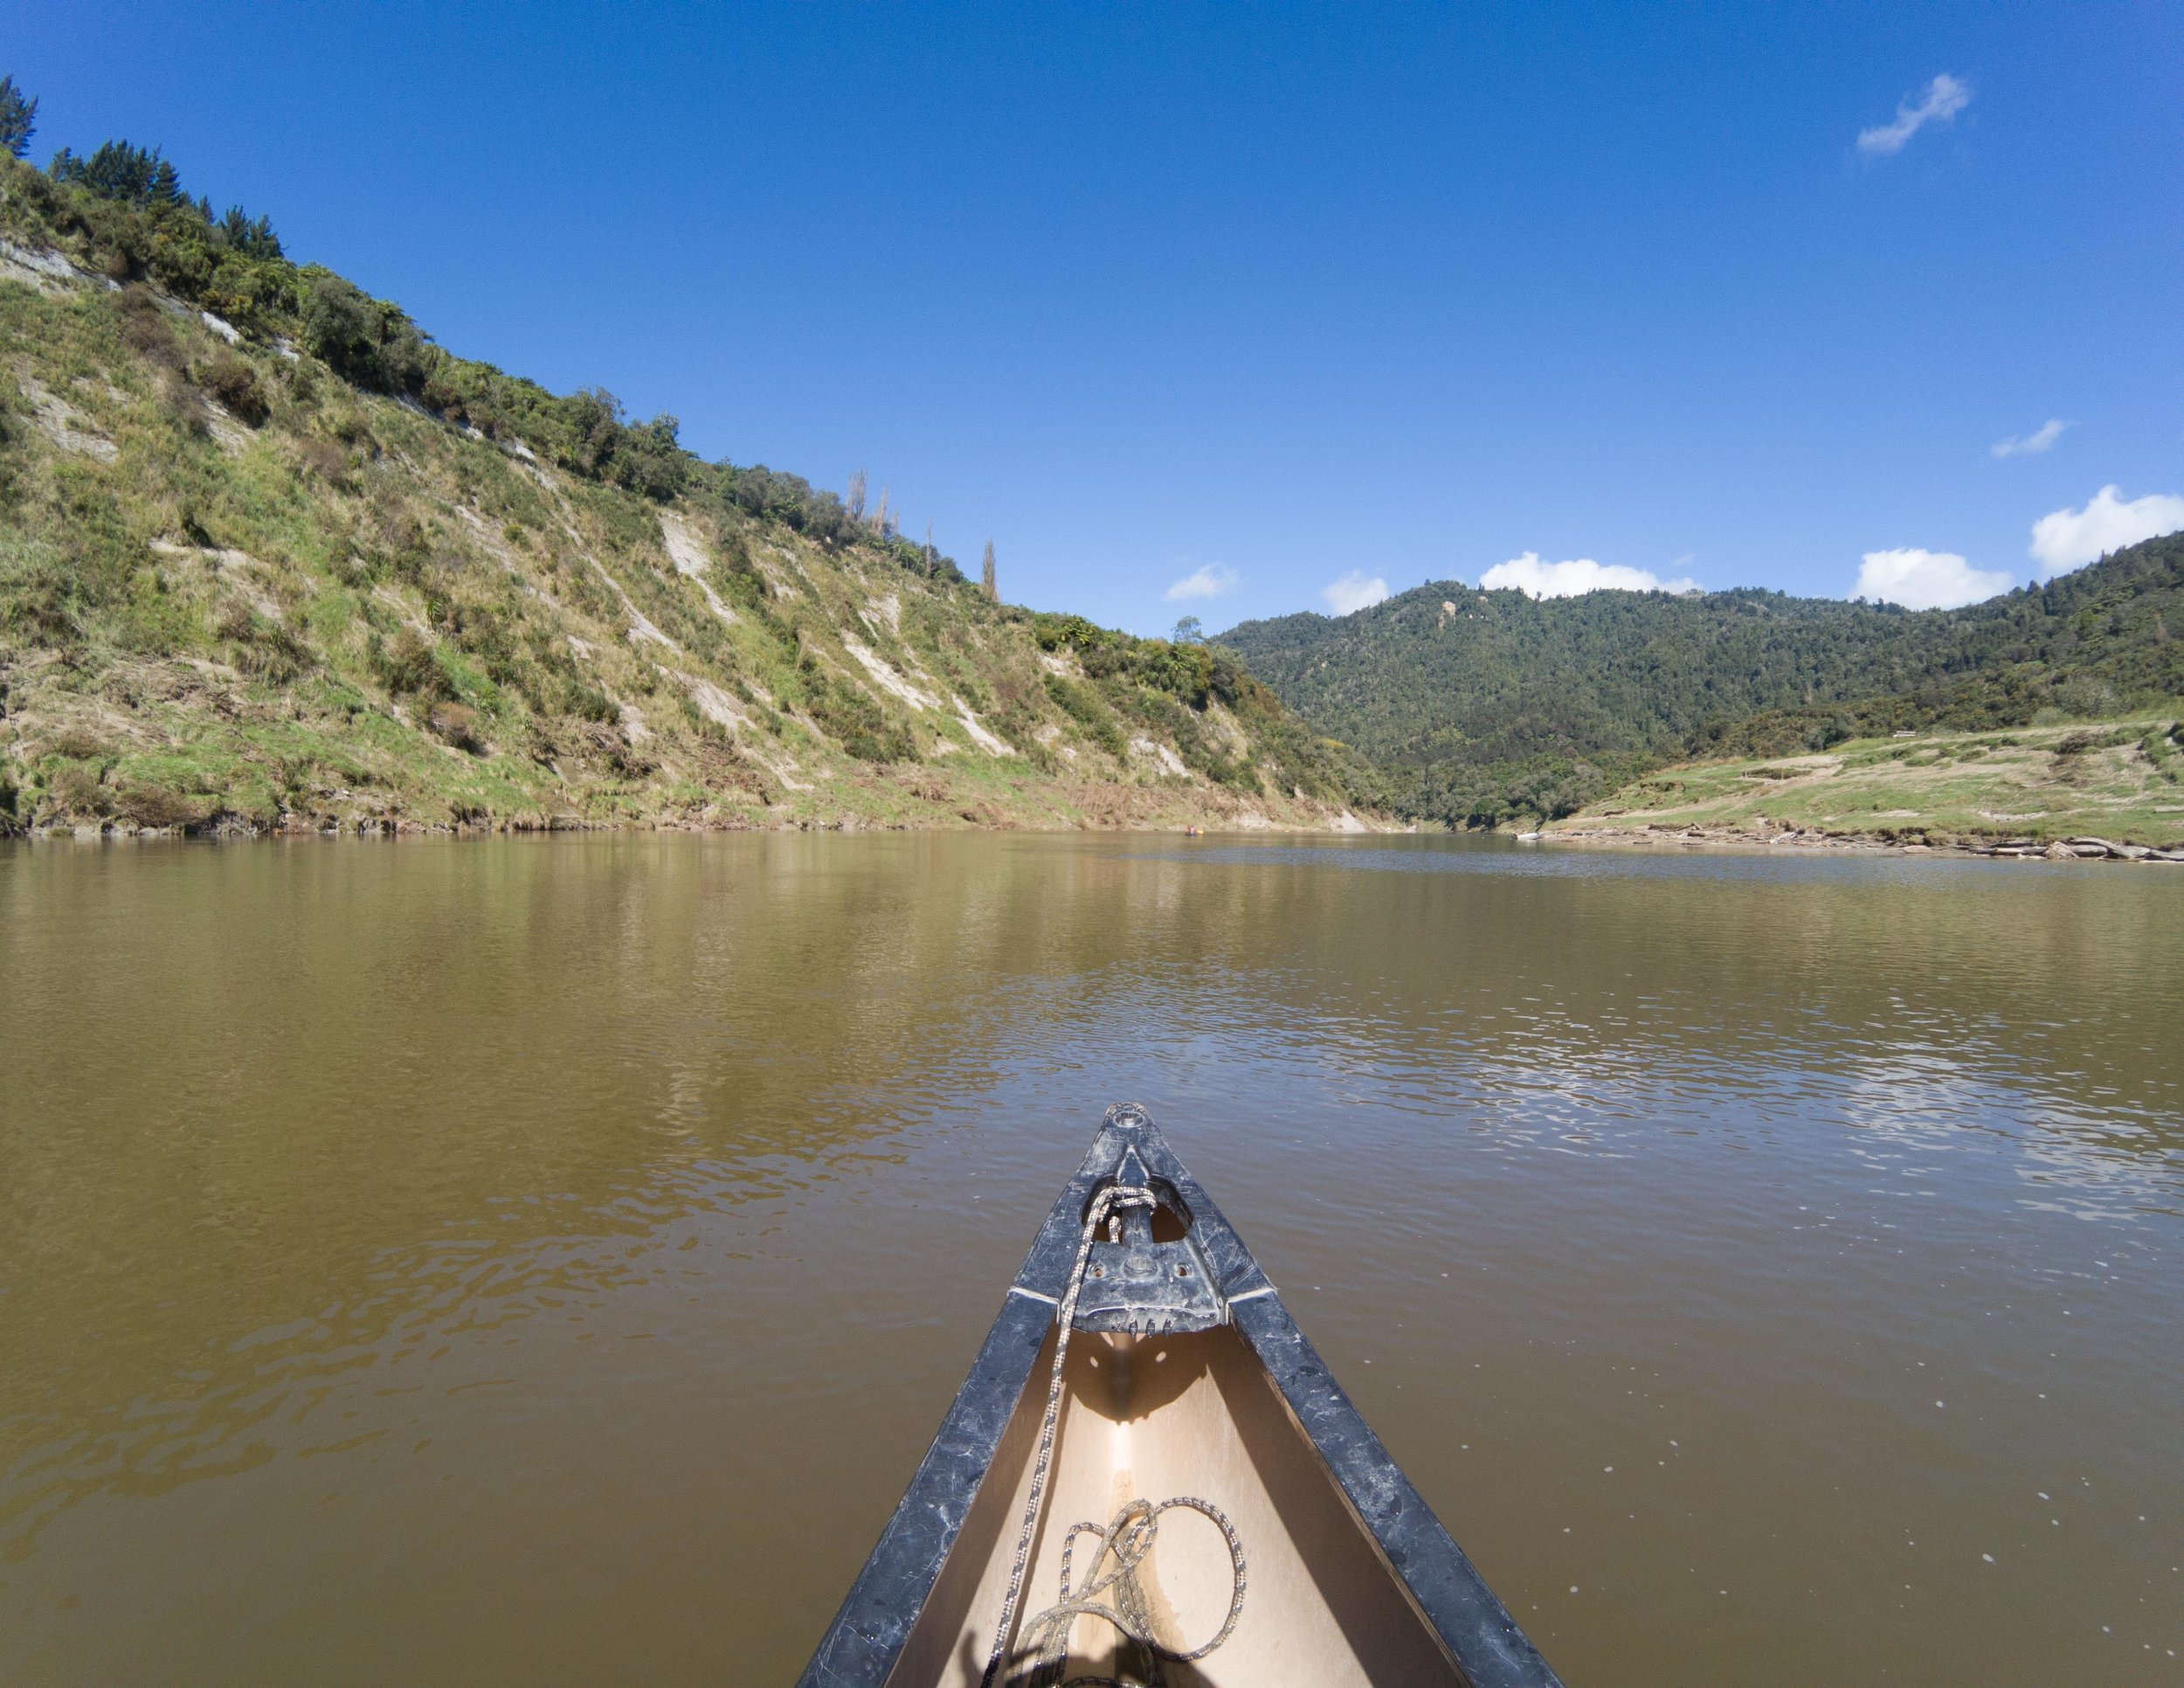 Booking the Whanganui River Journey